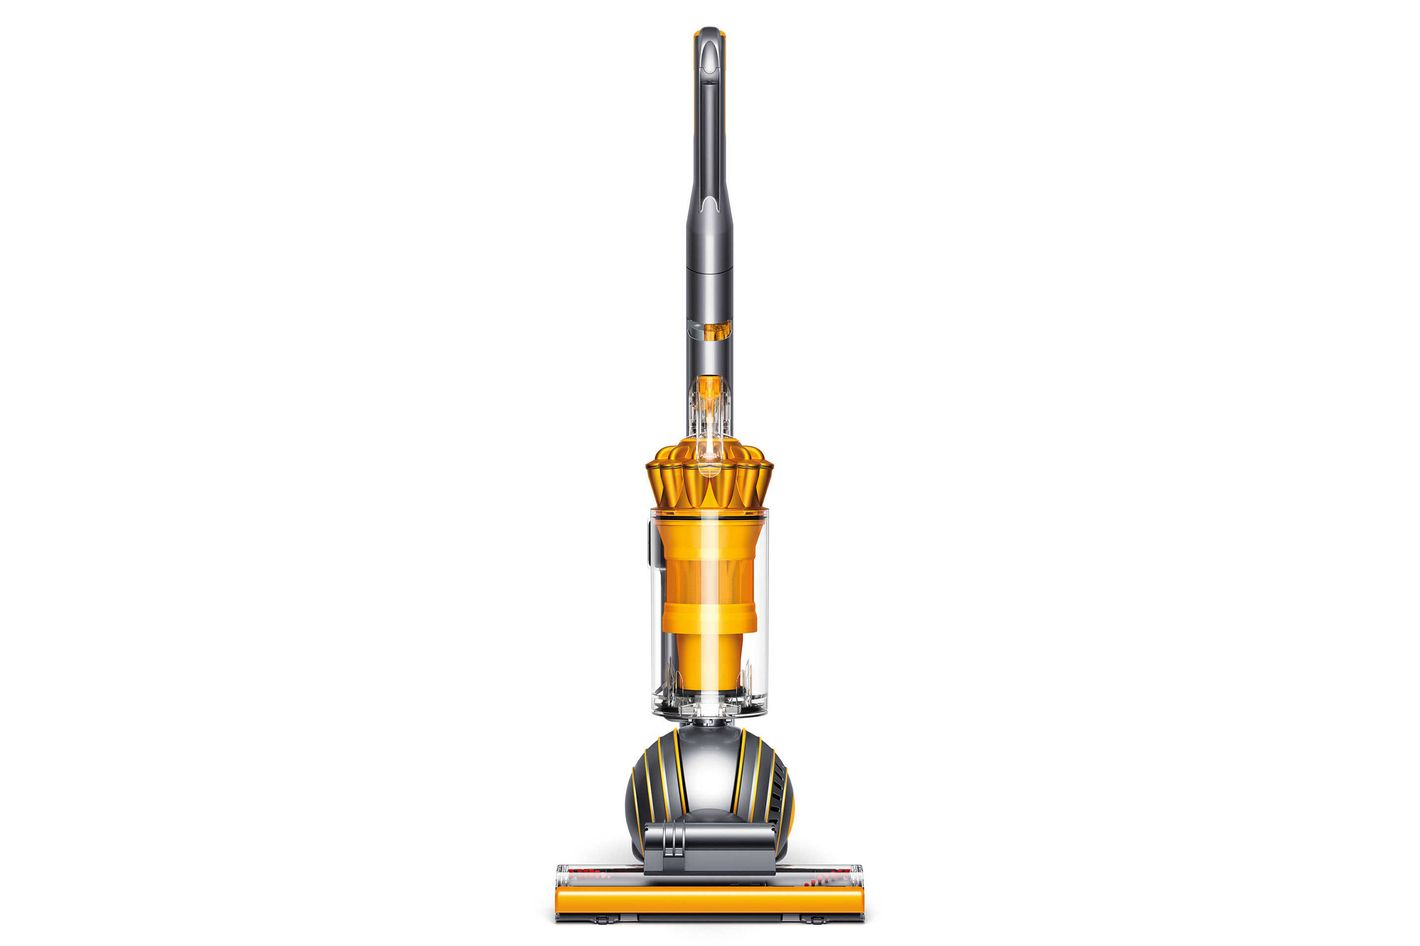 Dyson Ball Multifloor 2 Upright Vacuum in Iron/Satin Yellow